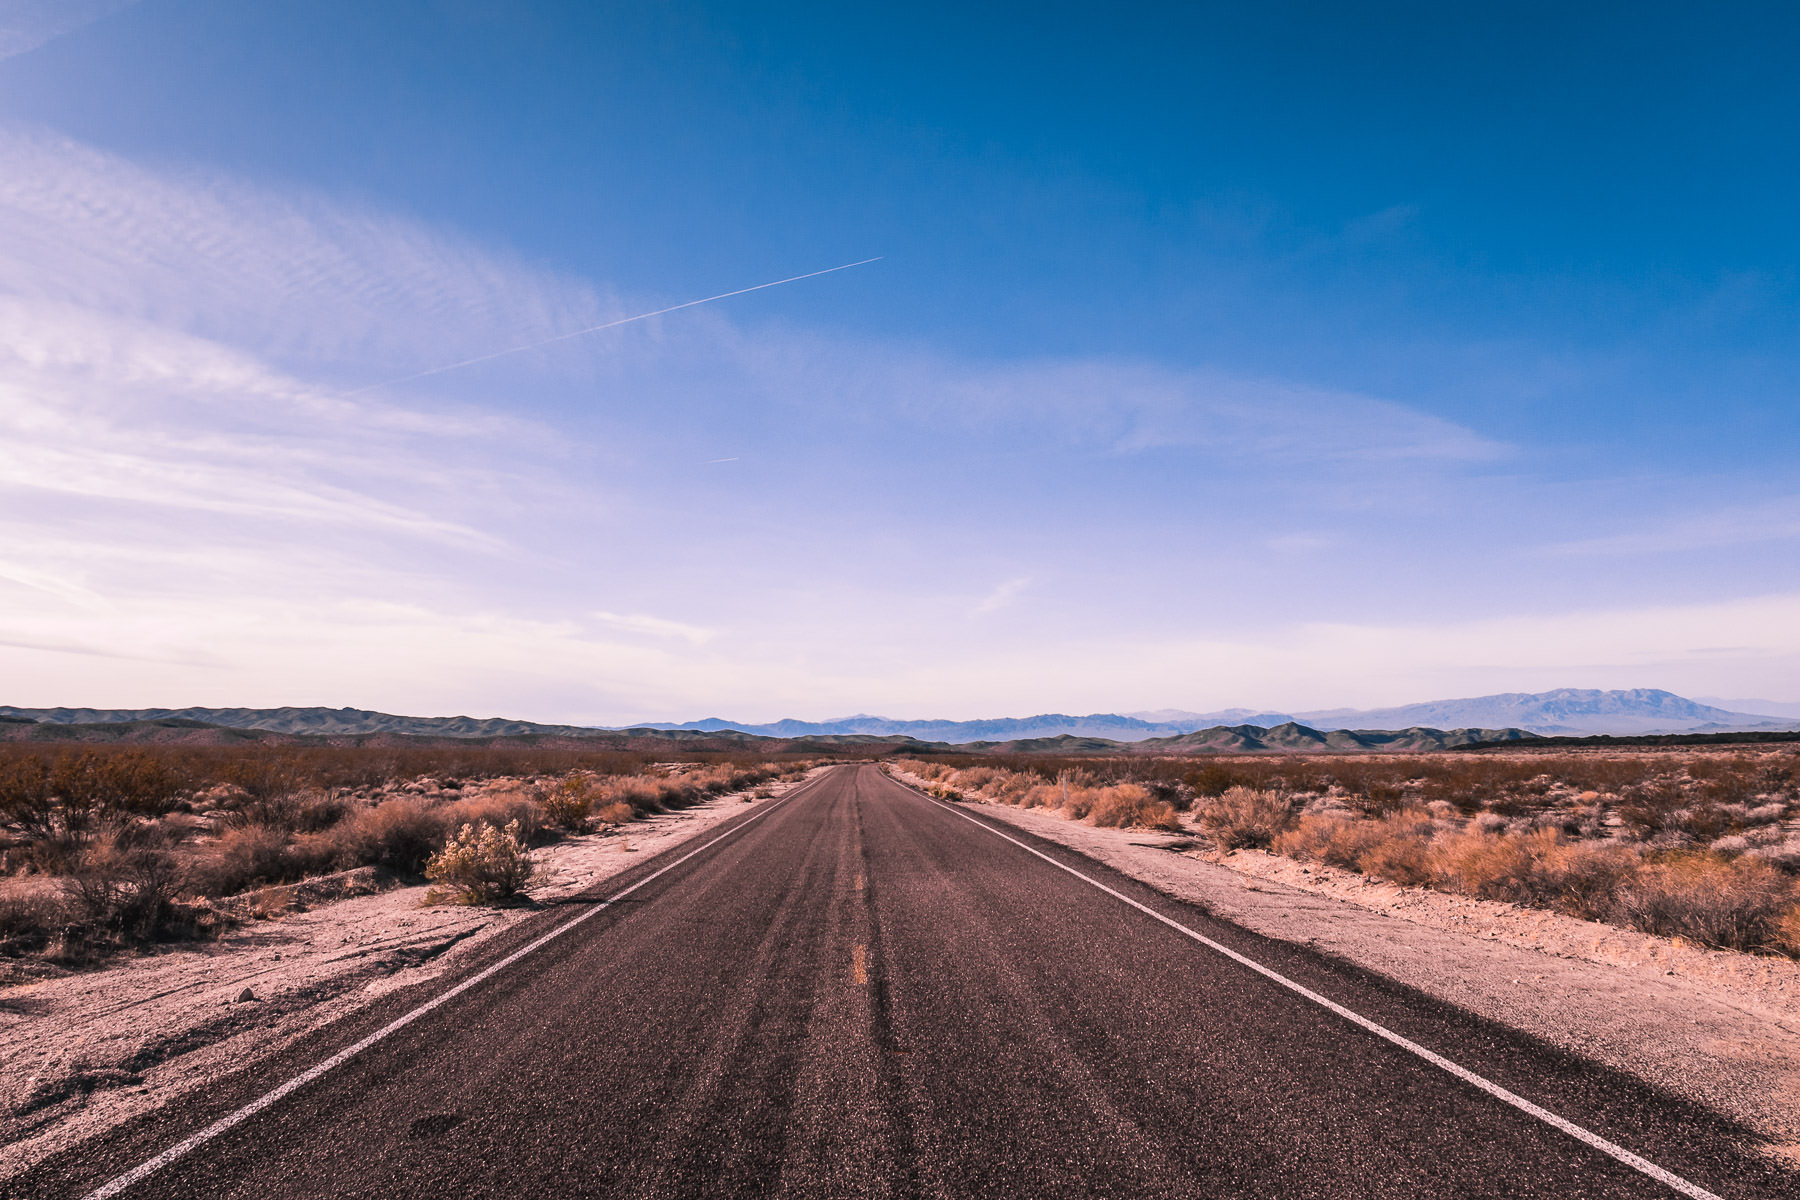 A lonely blacktop road stretches to the mountains in the distance at the Mojave National Preserve, California.